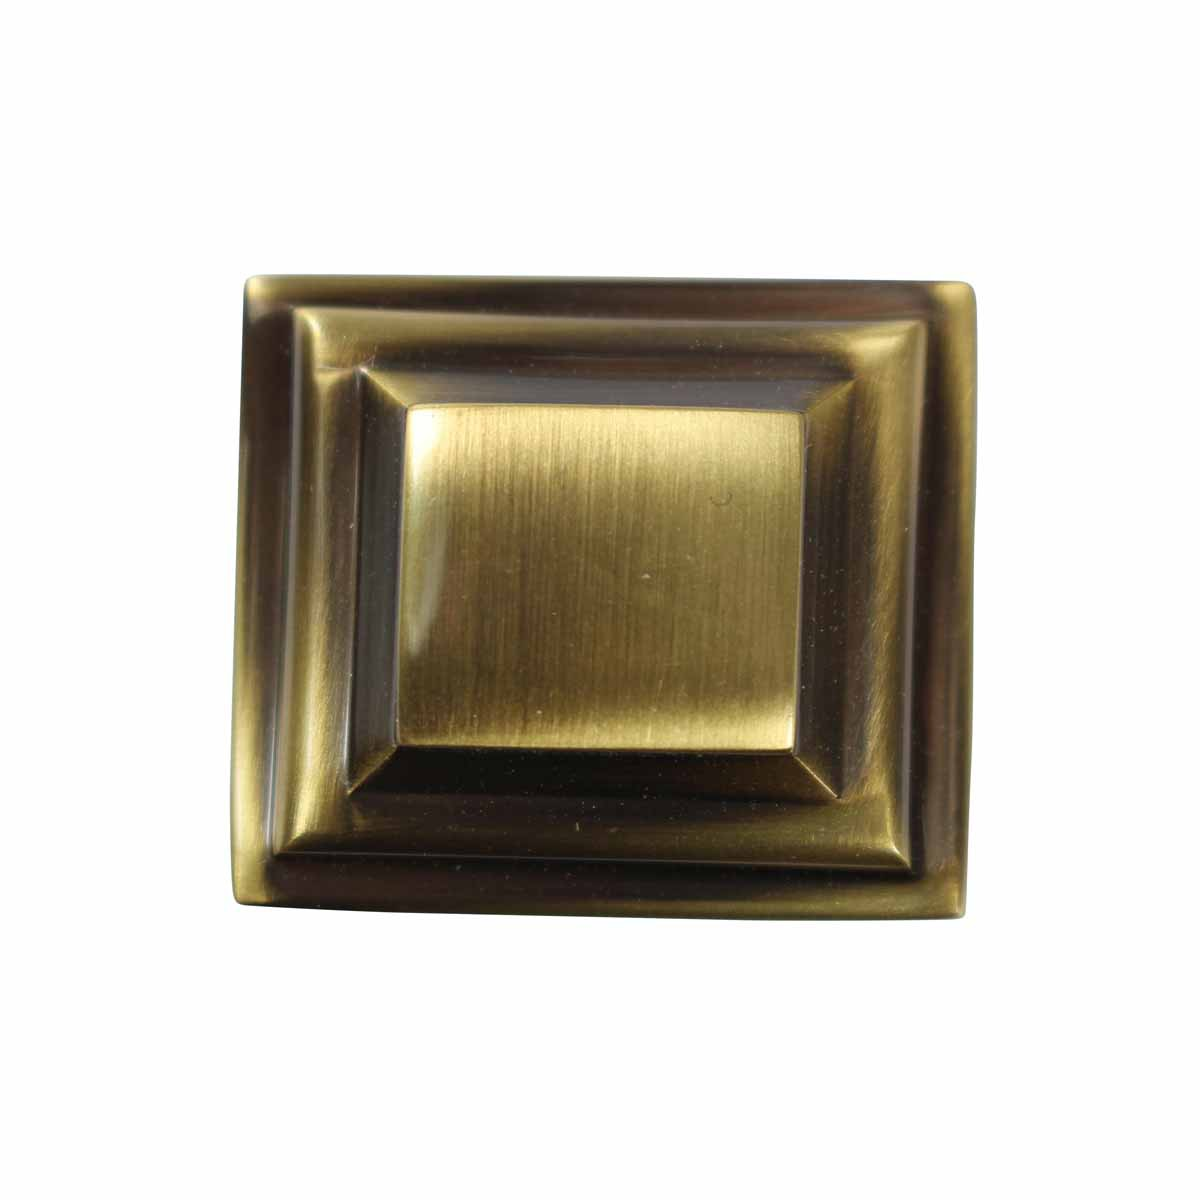 Cabinet Knob Cast Antique Brass 1 Square Brass Square Cabinet Knob Kitchen Modern Cabinet Hardware Antique Drawer and Cabinet Knobs